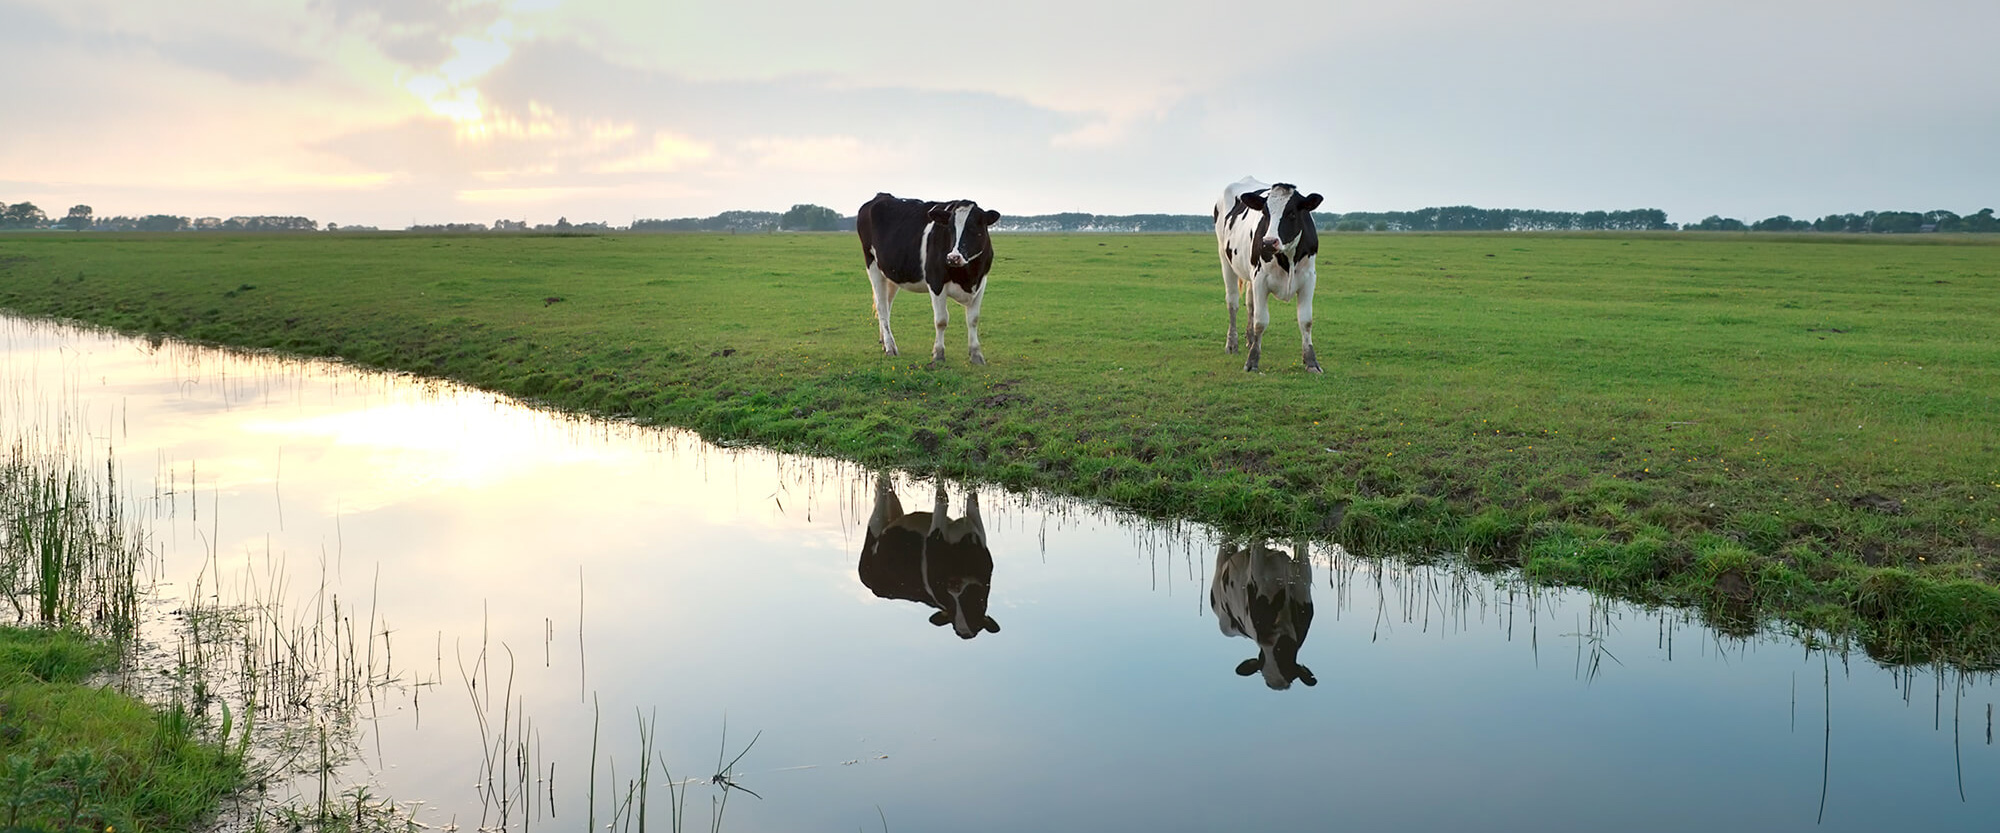 River of Cows